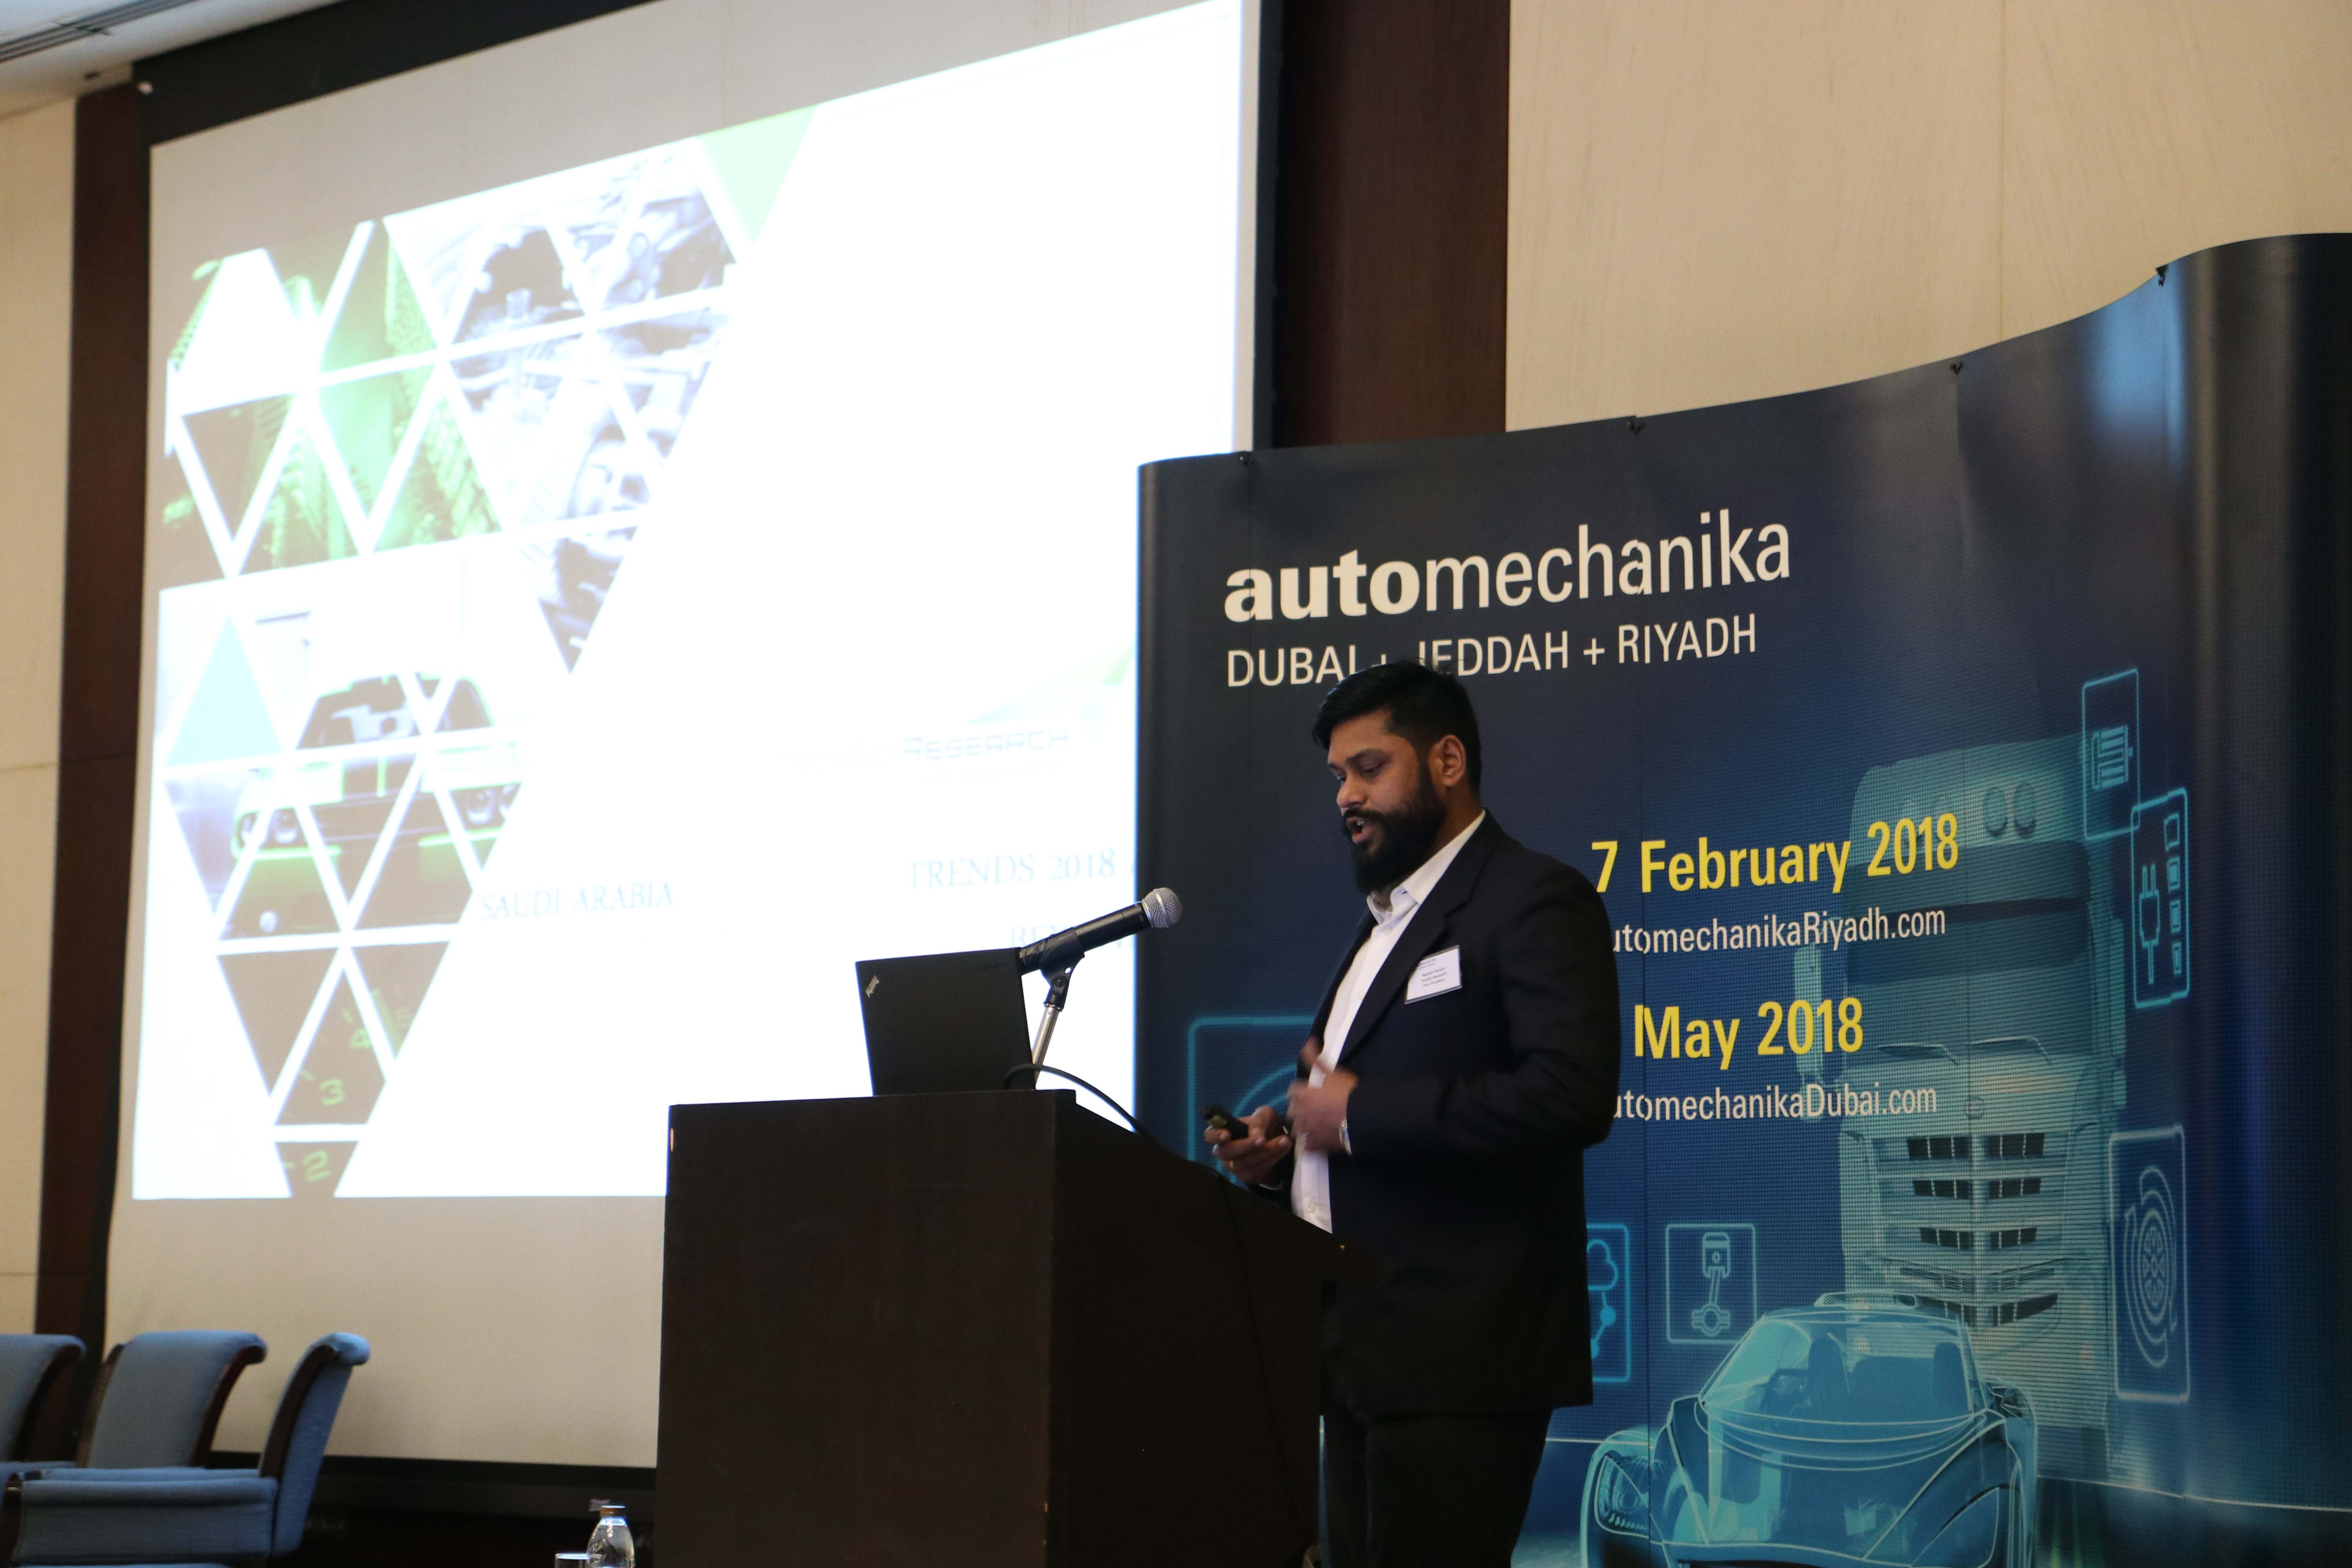 Automechanika Network Dubai, 2018